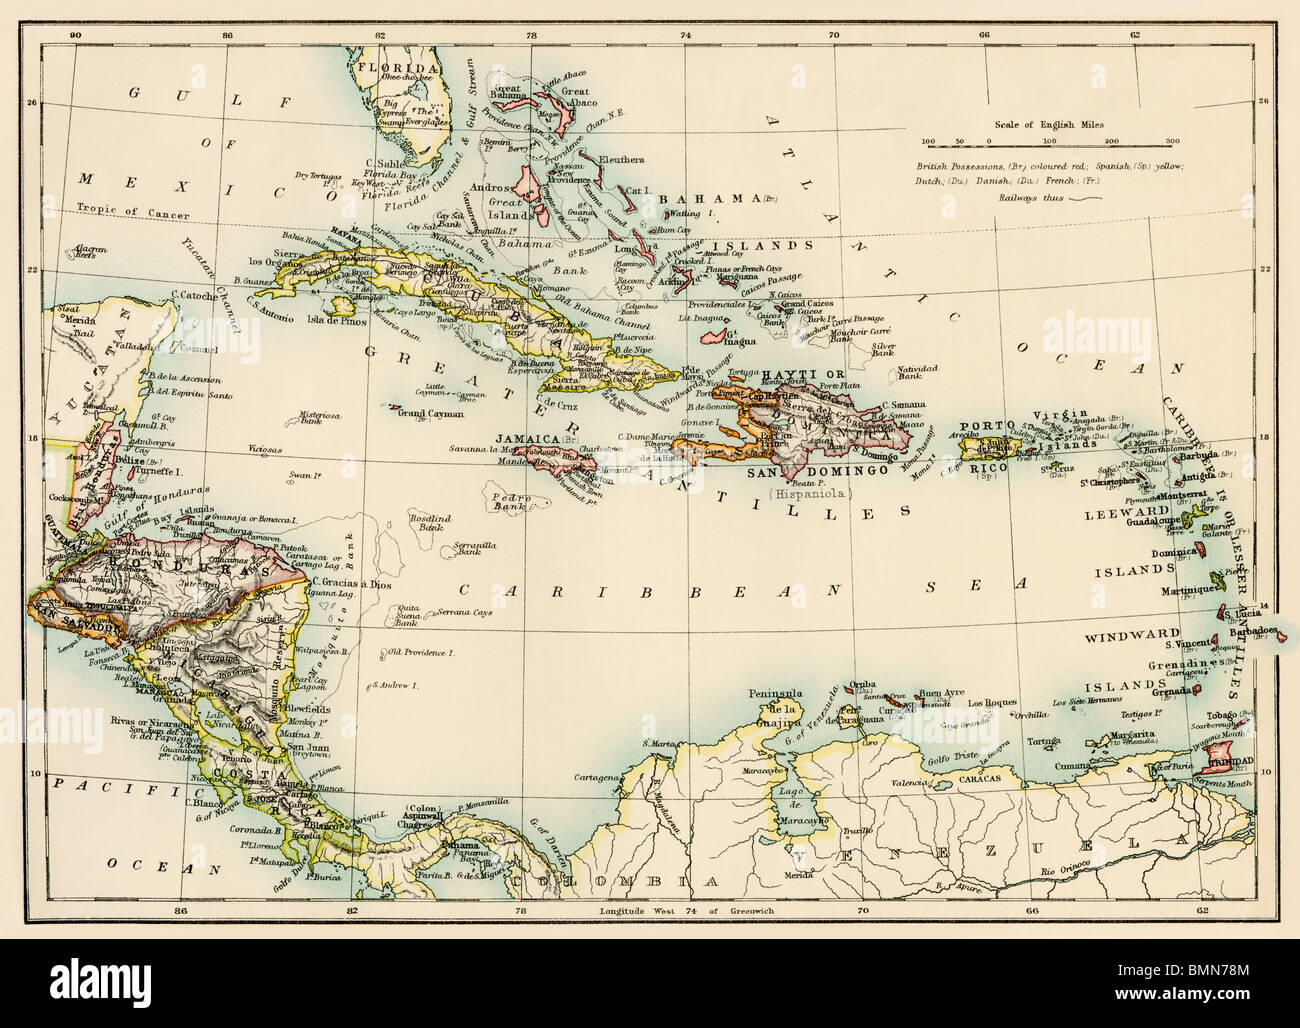 Map Of West Indies And The Caribbean Sea S Stock Photo - Caribbean sea map